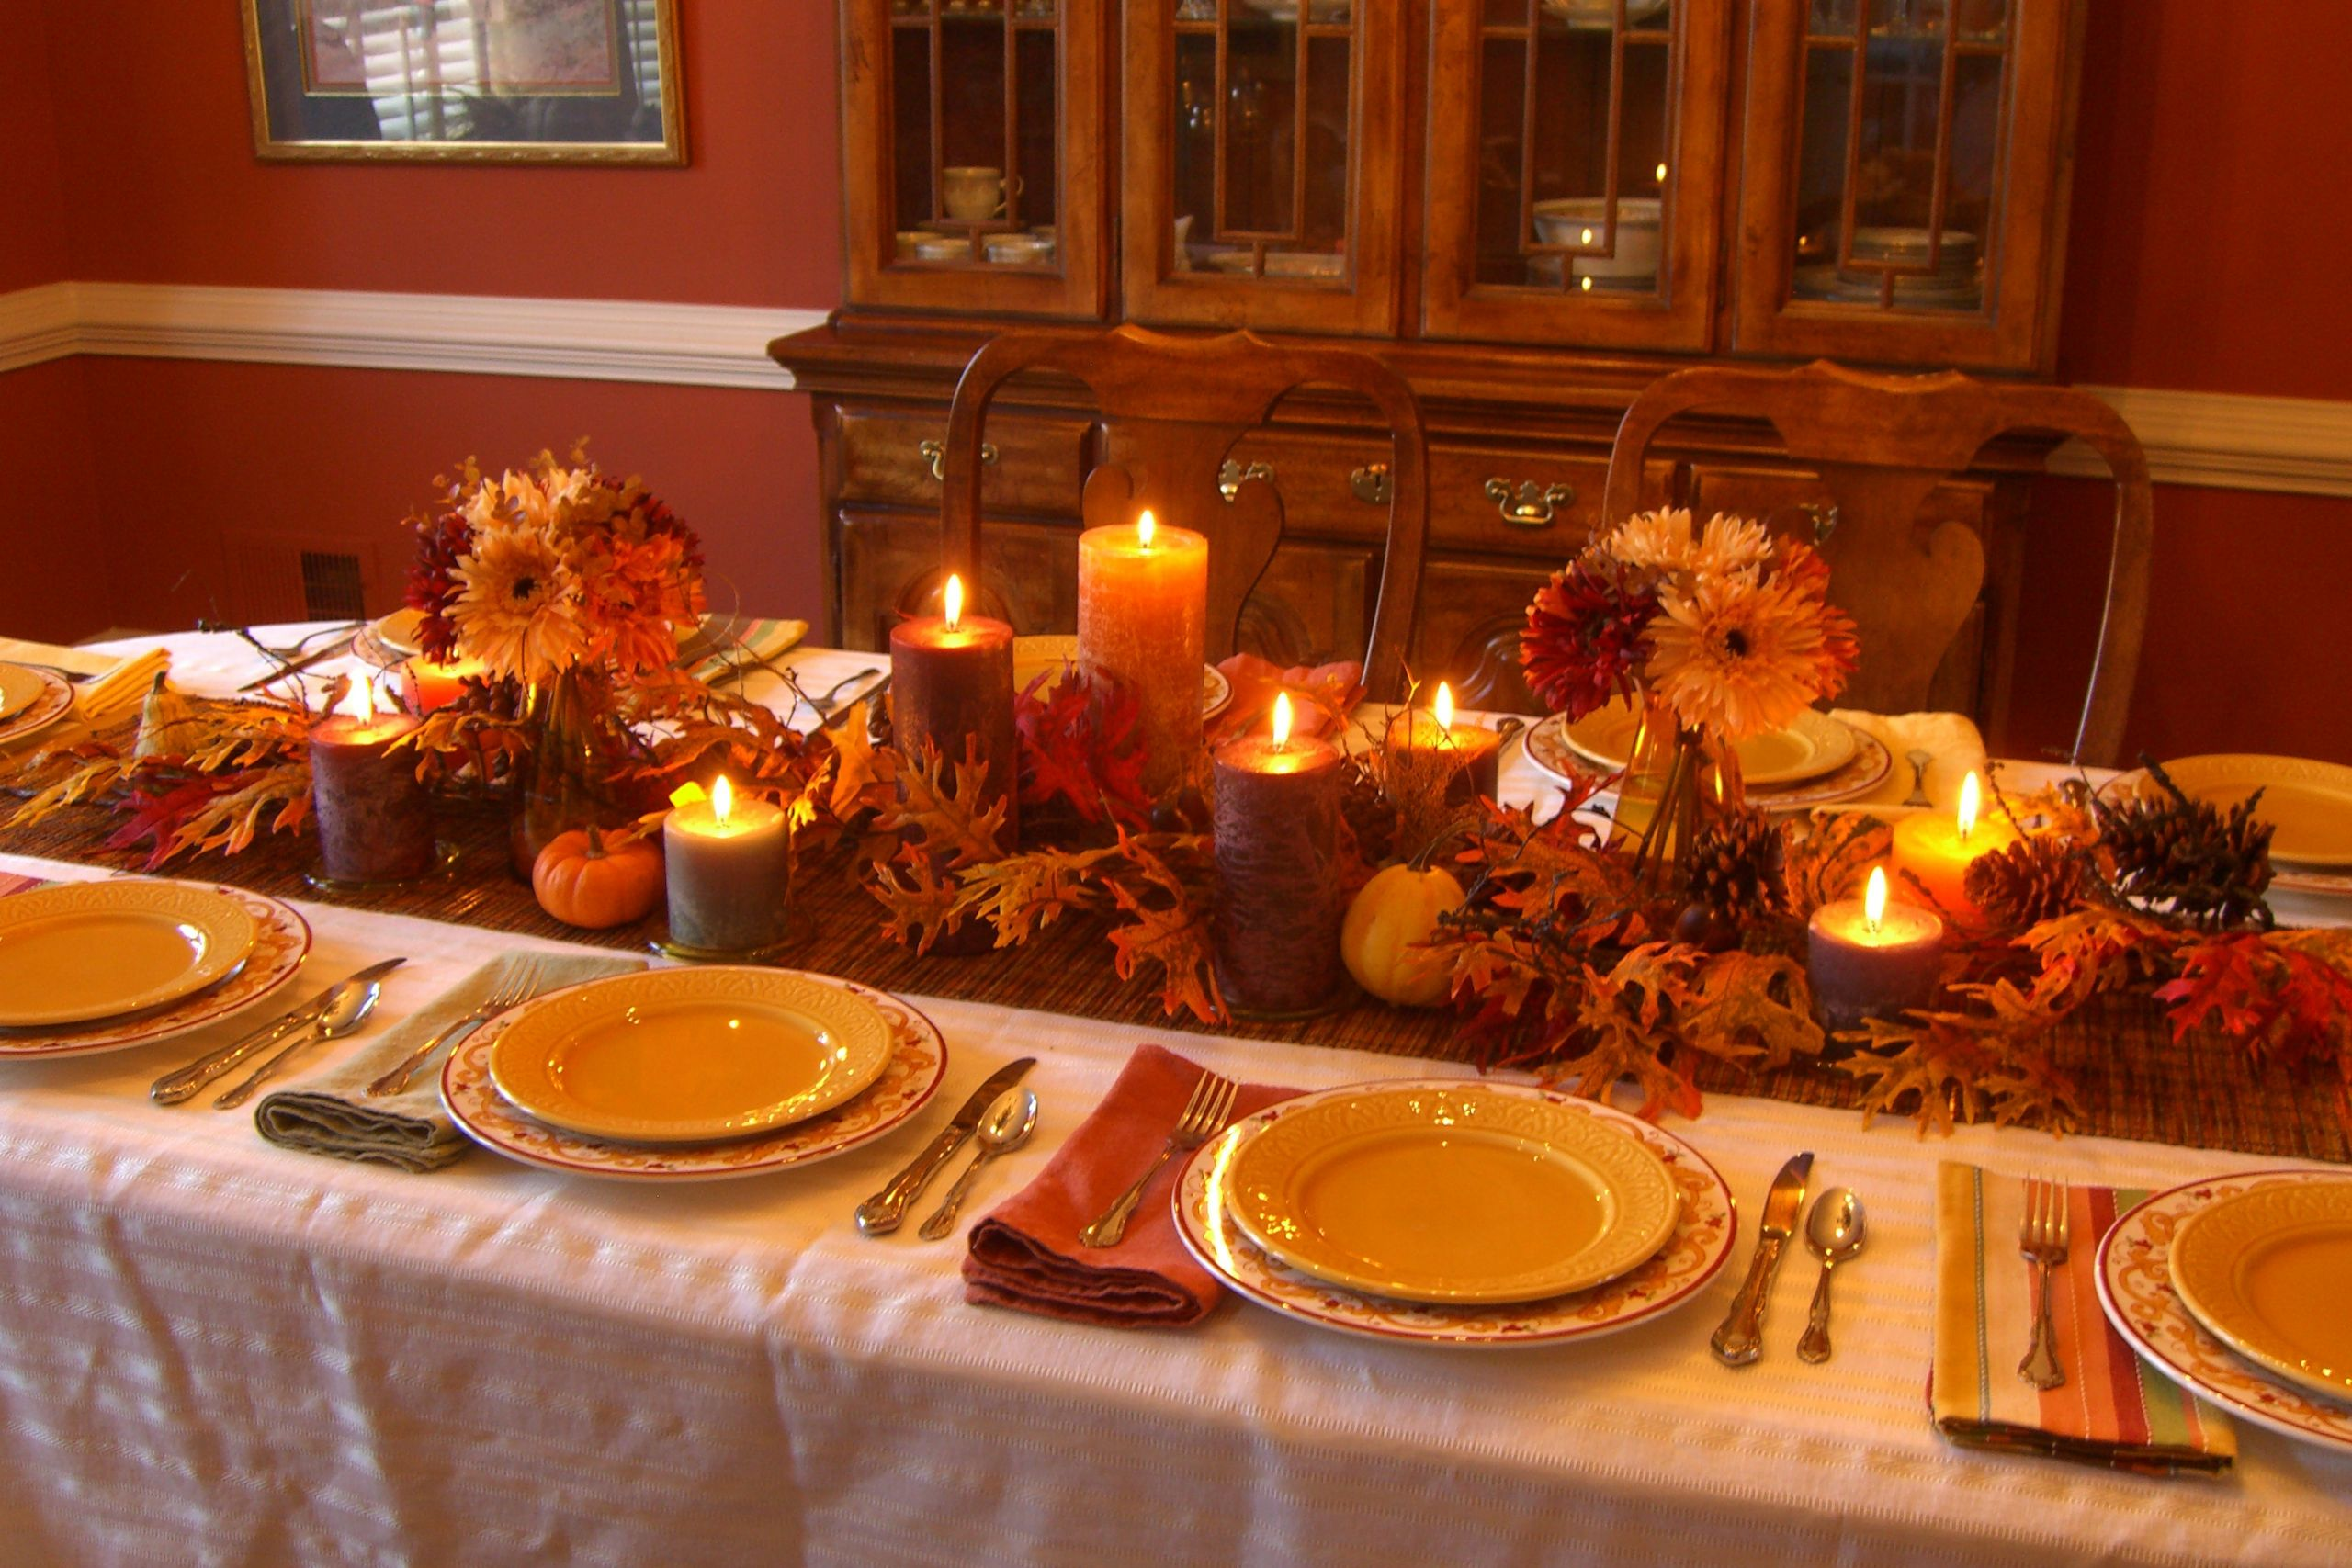 Thanksgiving Dinner Table Decorations  Decorating My Thanksgiving Table